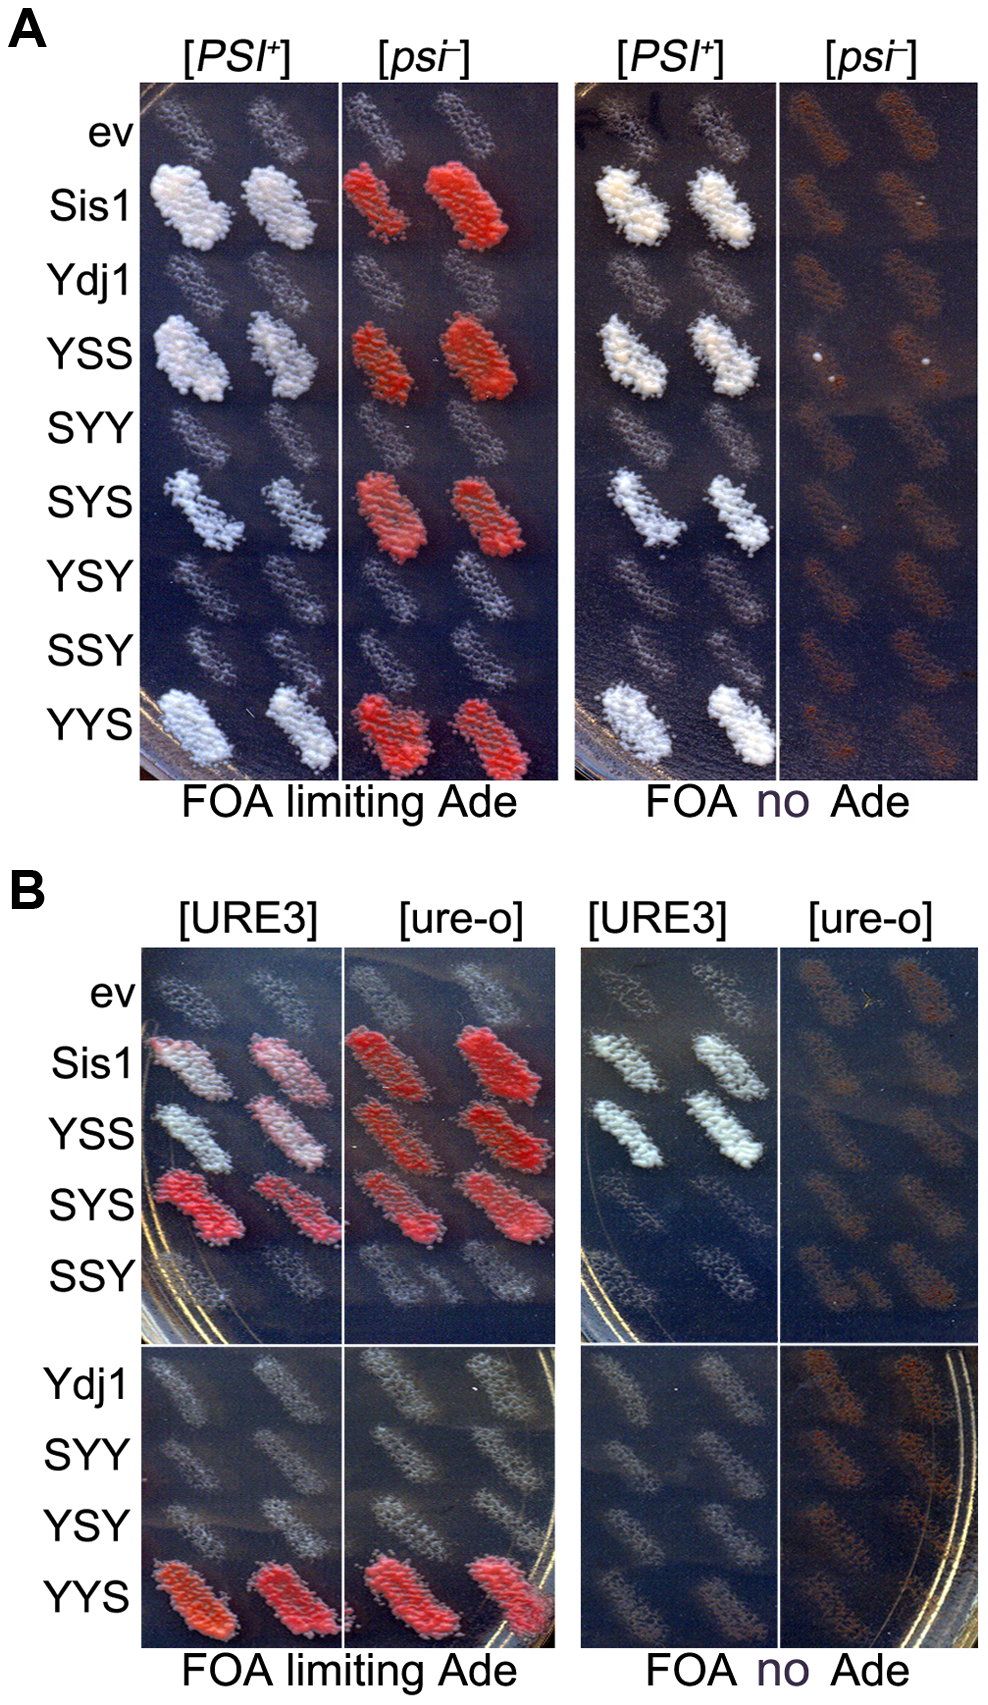 Functions of Sis1/Ydj1 hybrids in place of Sis1.